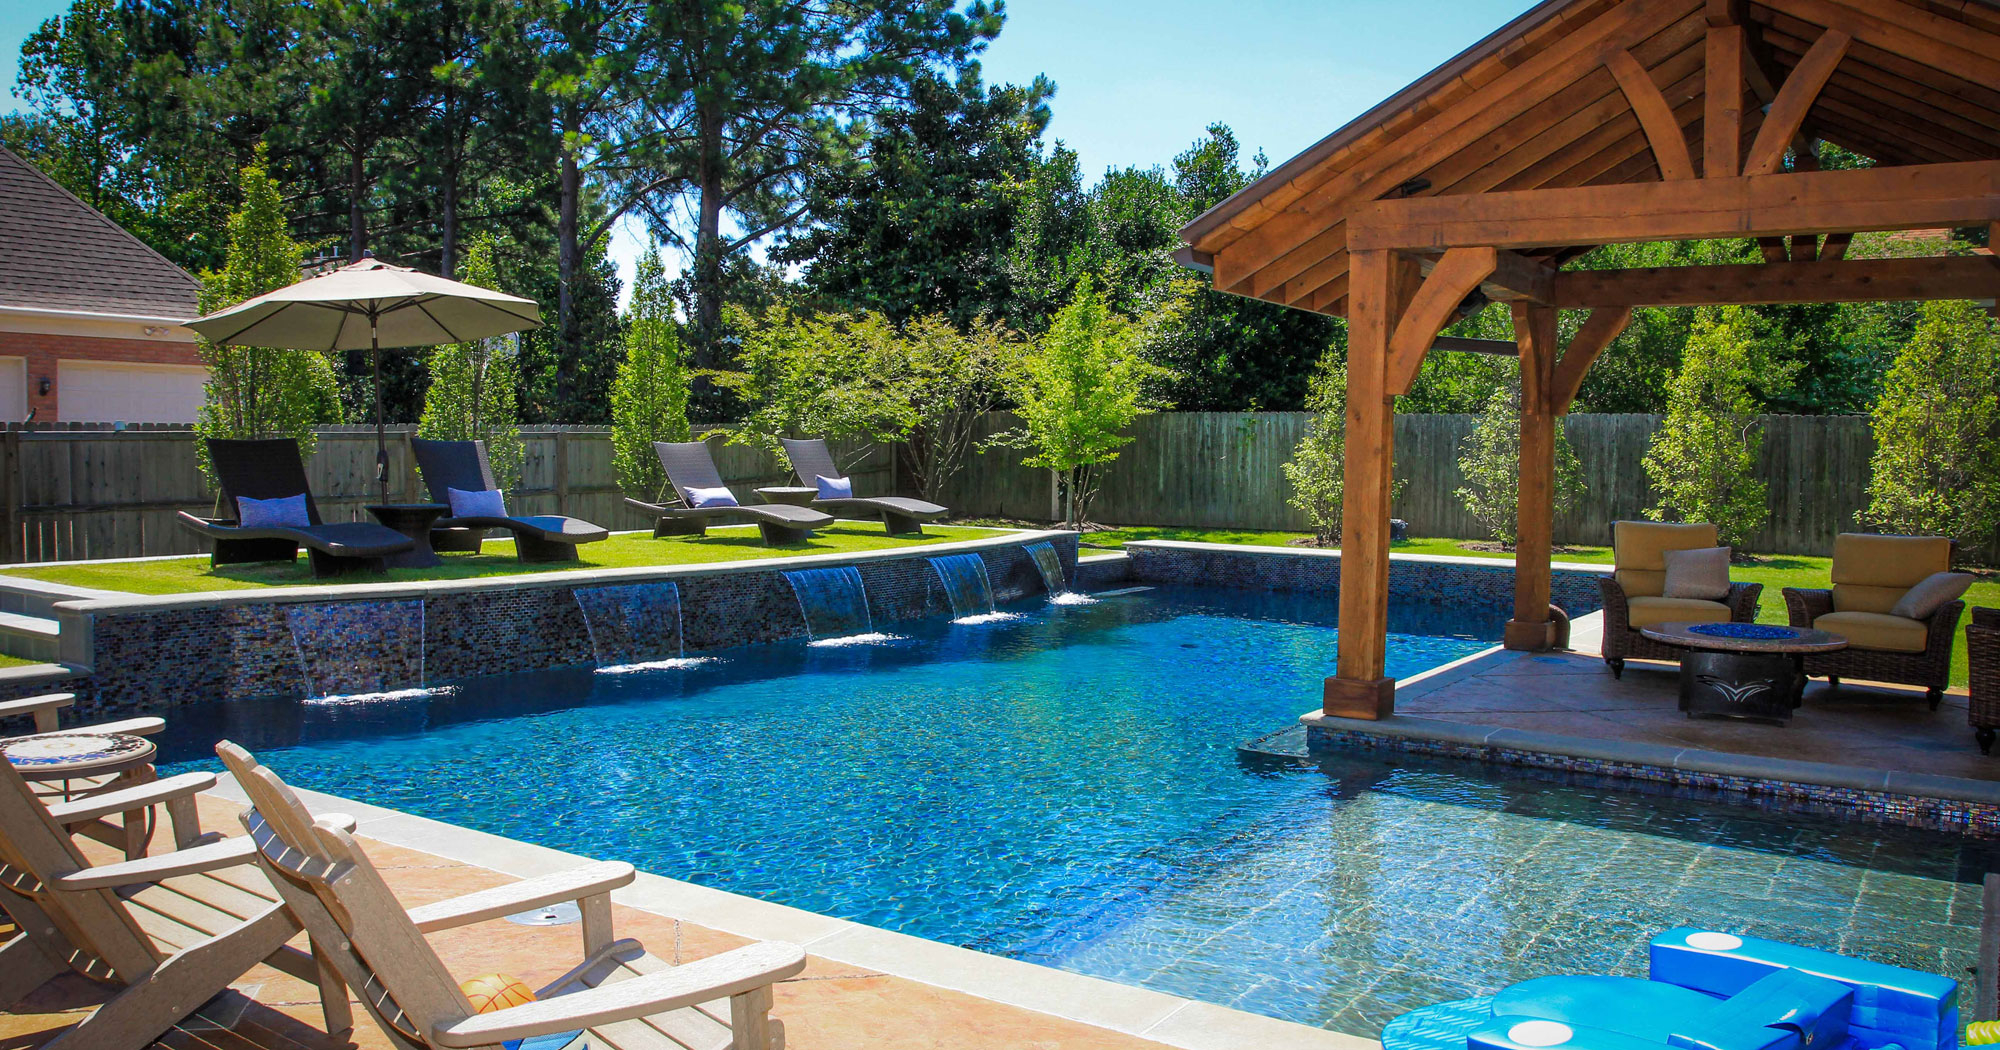 20 Backyard Pool Ideas For The Wealthy Homeowner for Backyard With Pool Design Ideas